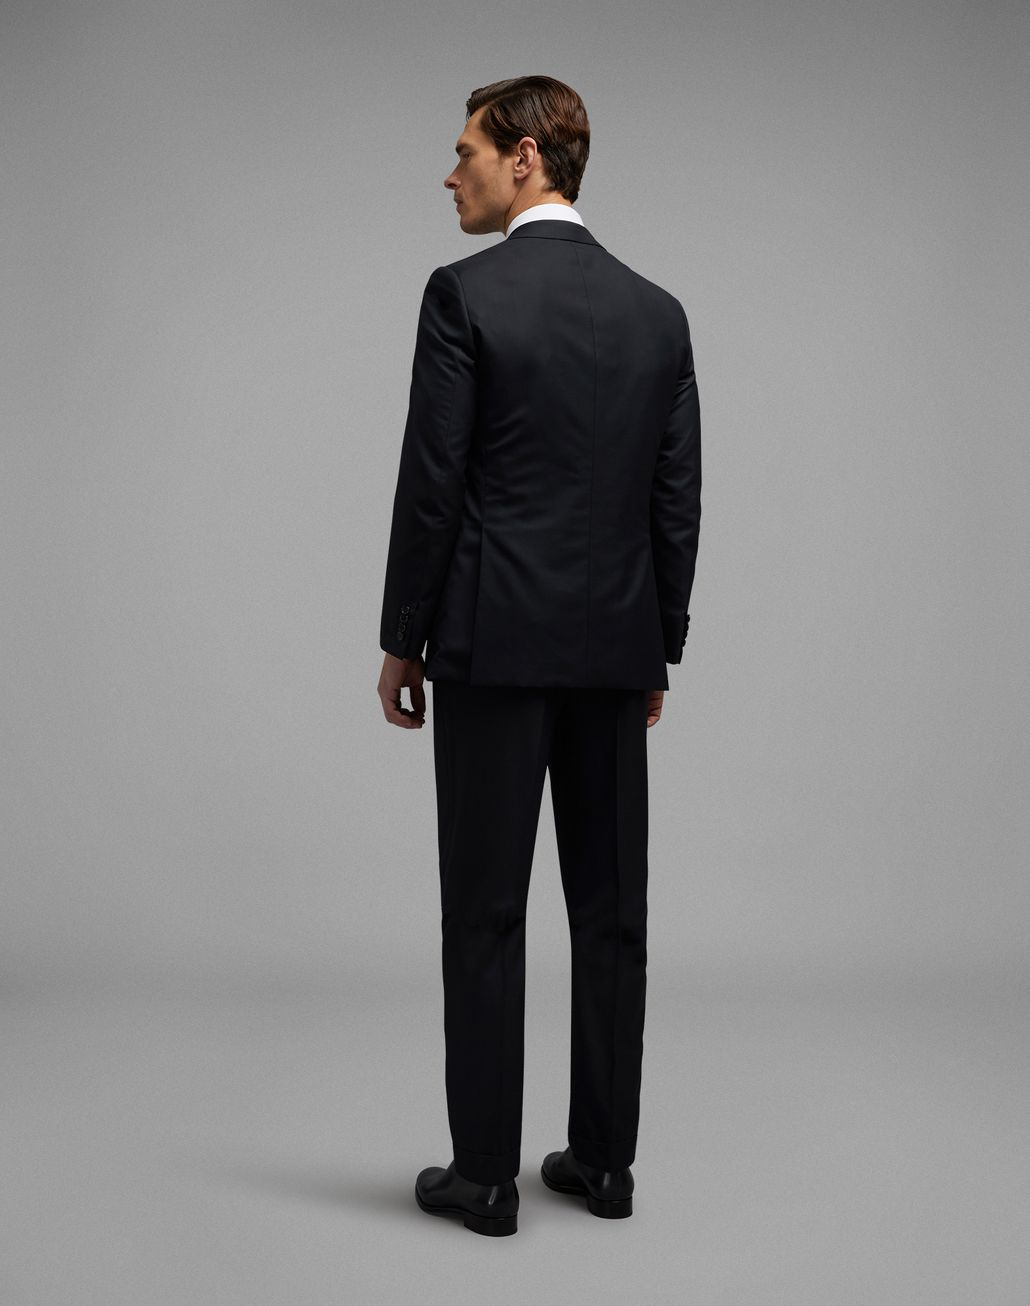 BRIONI 'Essential' Black Brunico Suit Suits & Jackets Man d